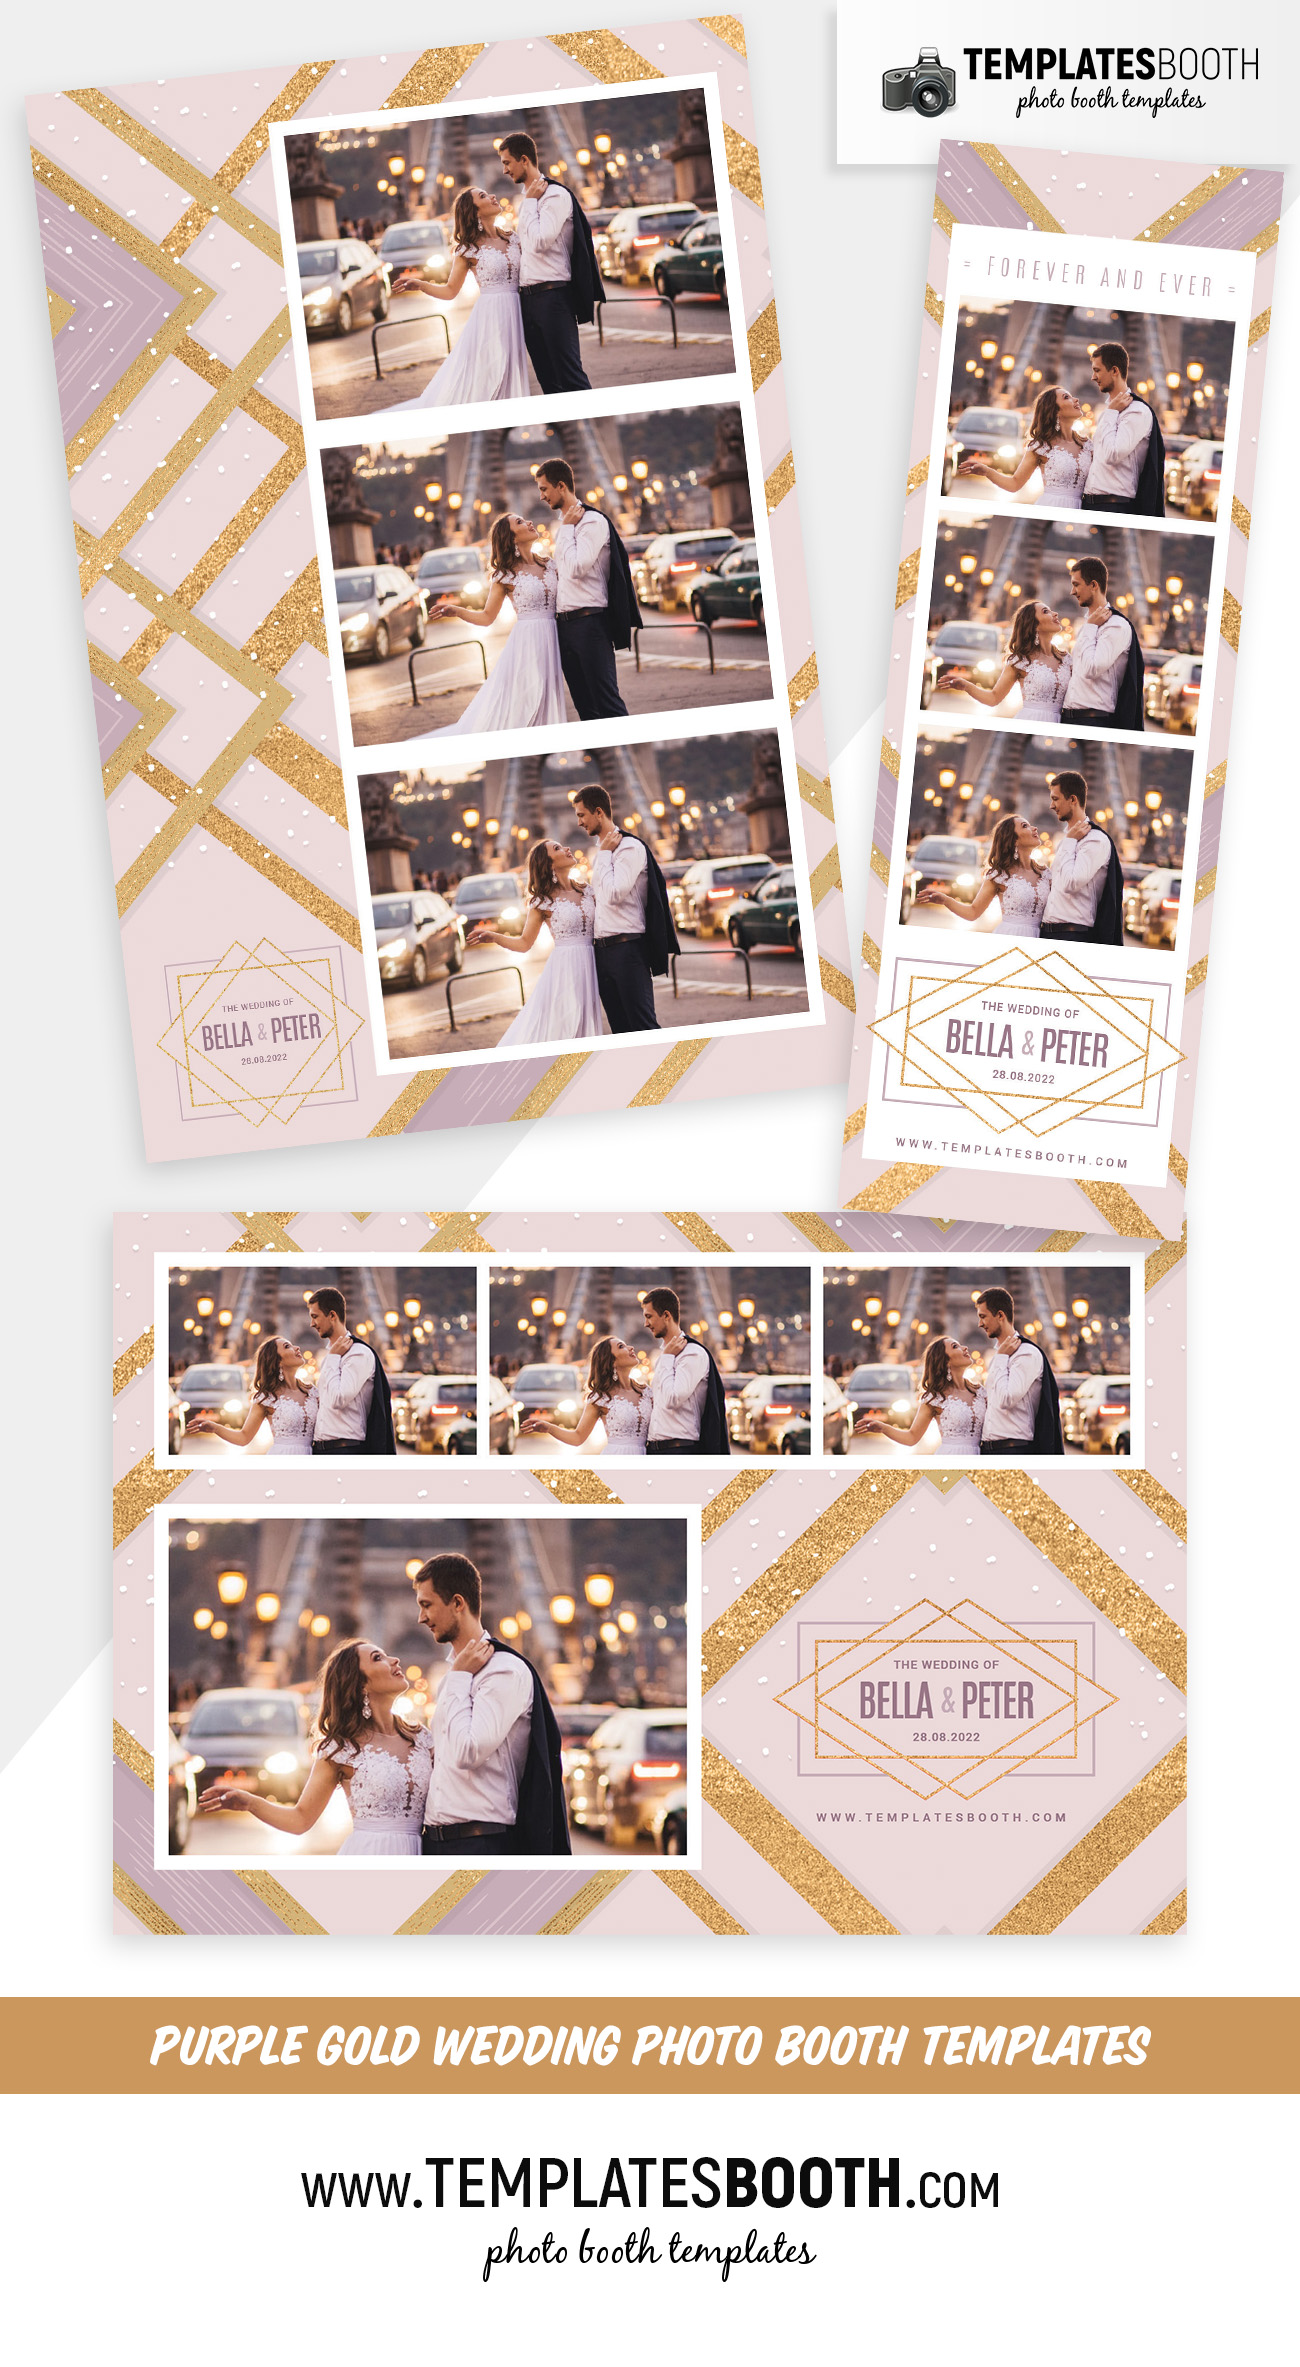 Purple & Gold Photo Booth Template